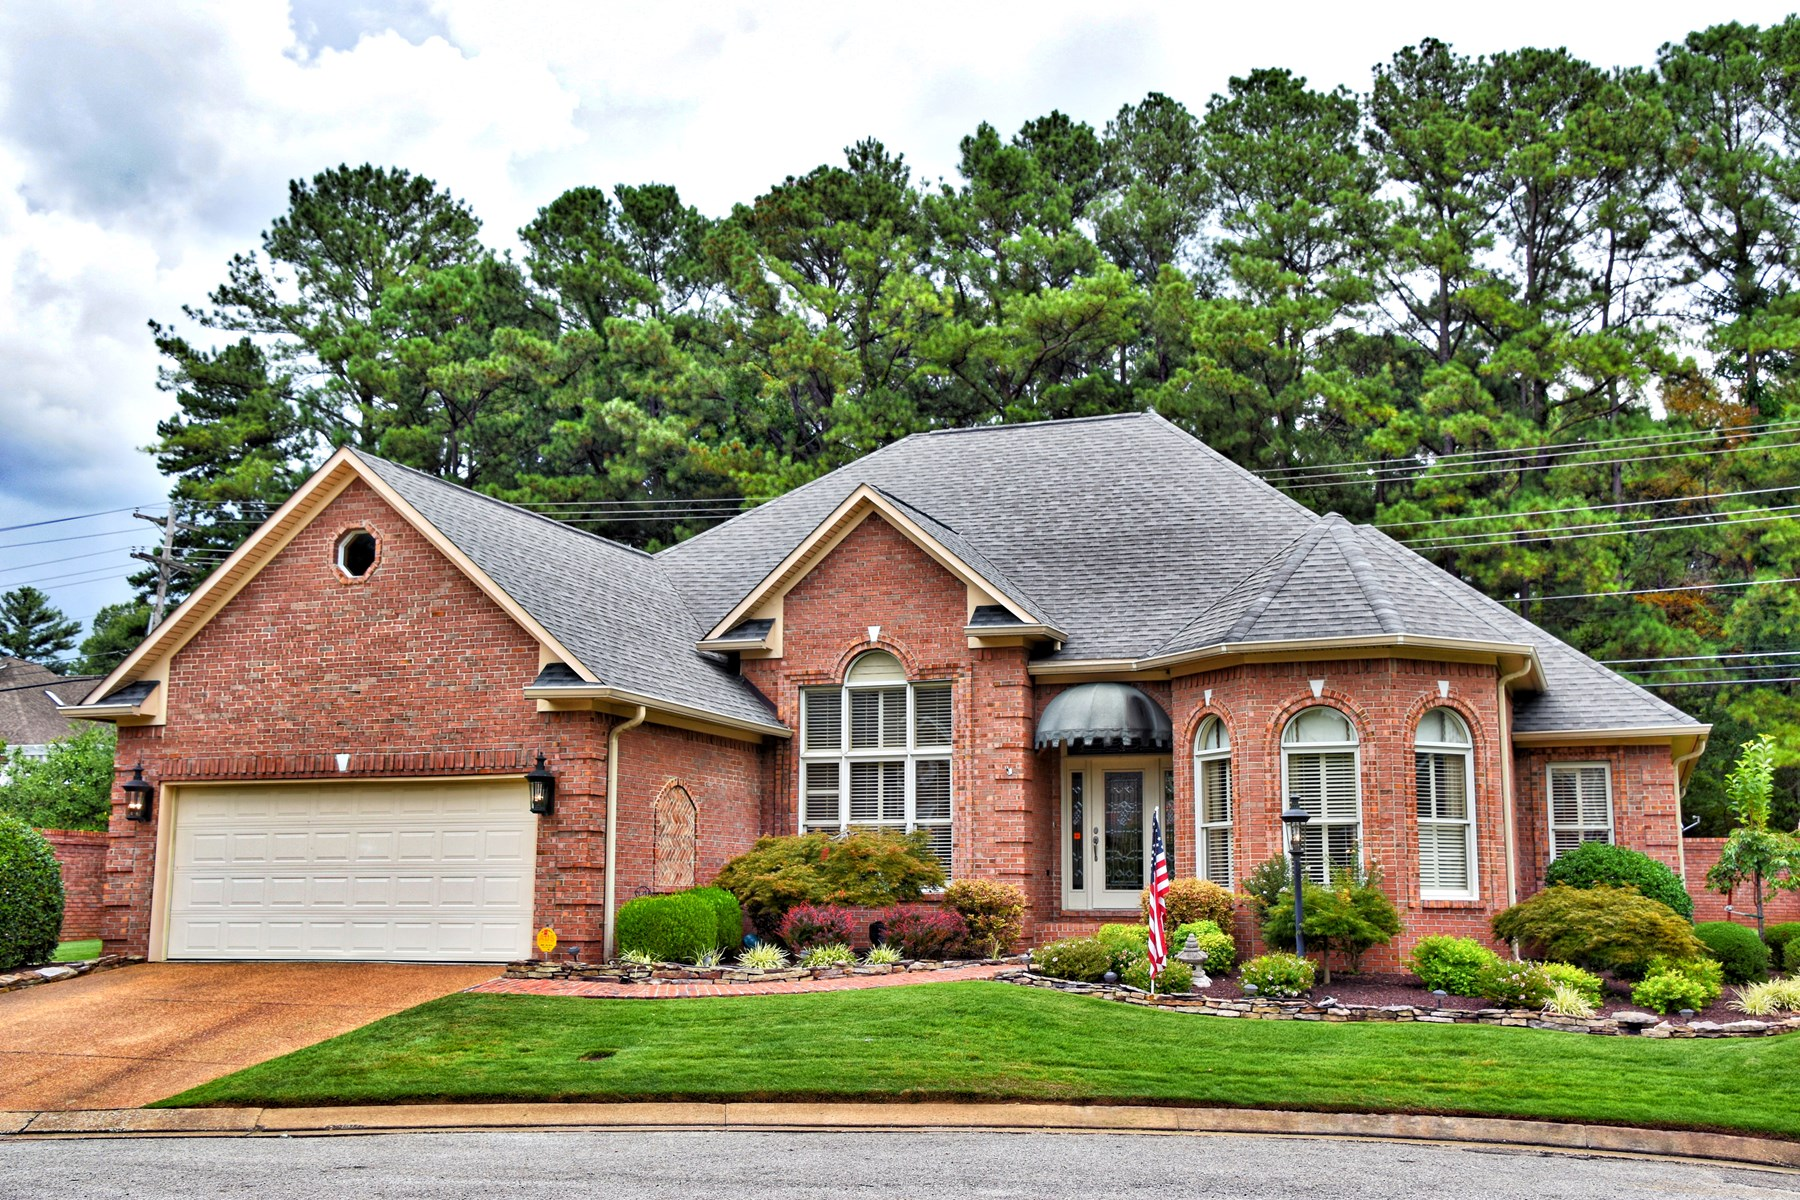 Gated community Home for sale in Jackson TN, Adult living!